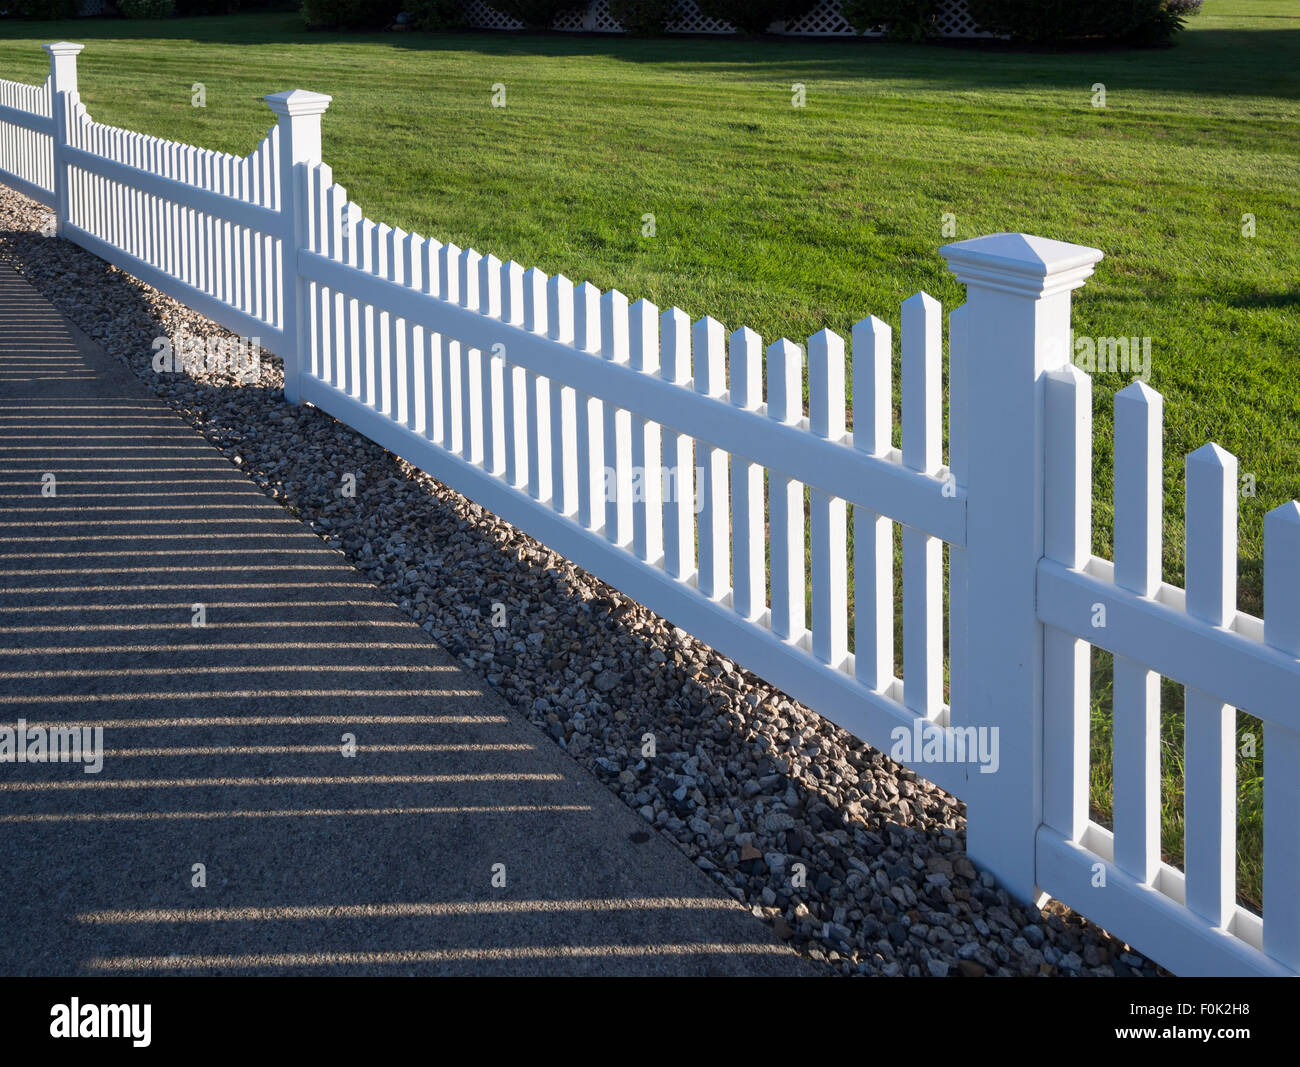 White picket fence that delineates the grass from the pathway - Stock Image